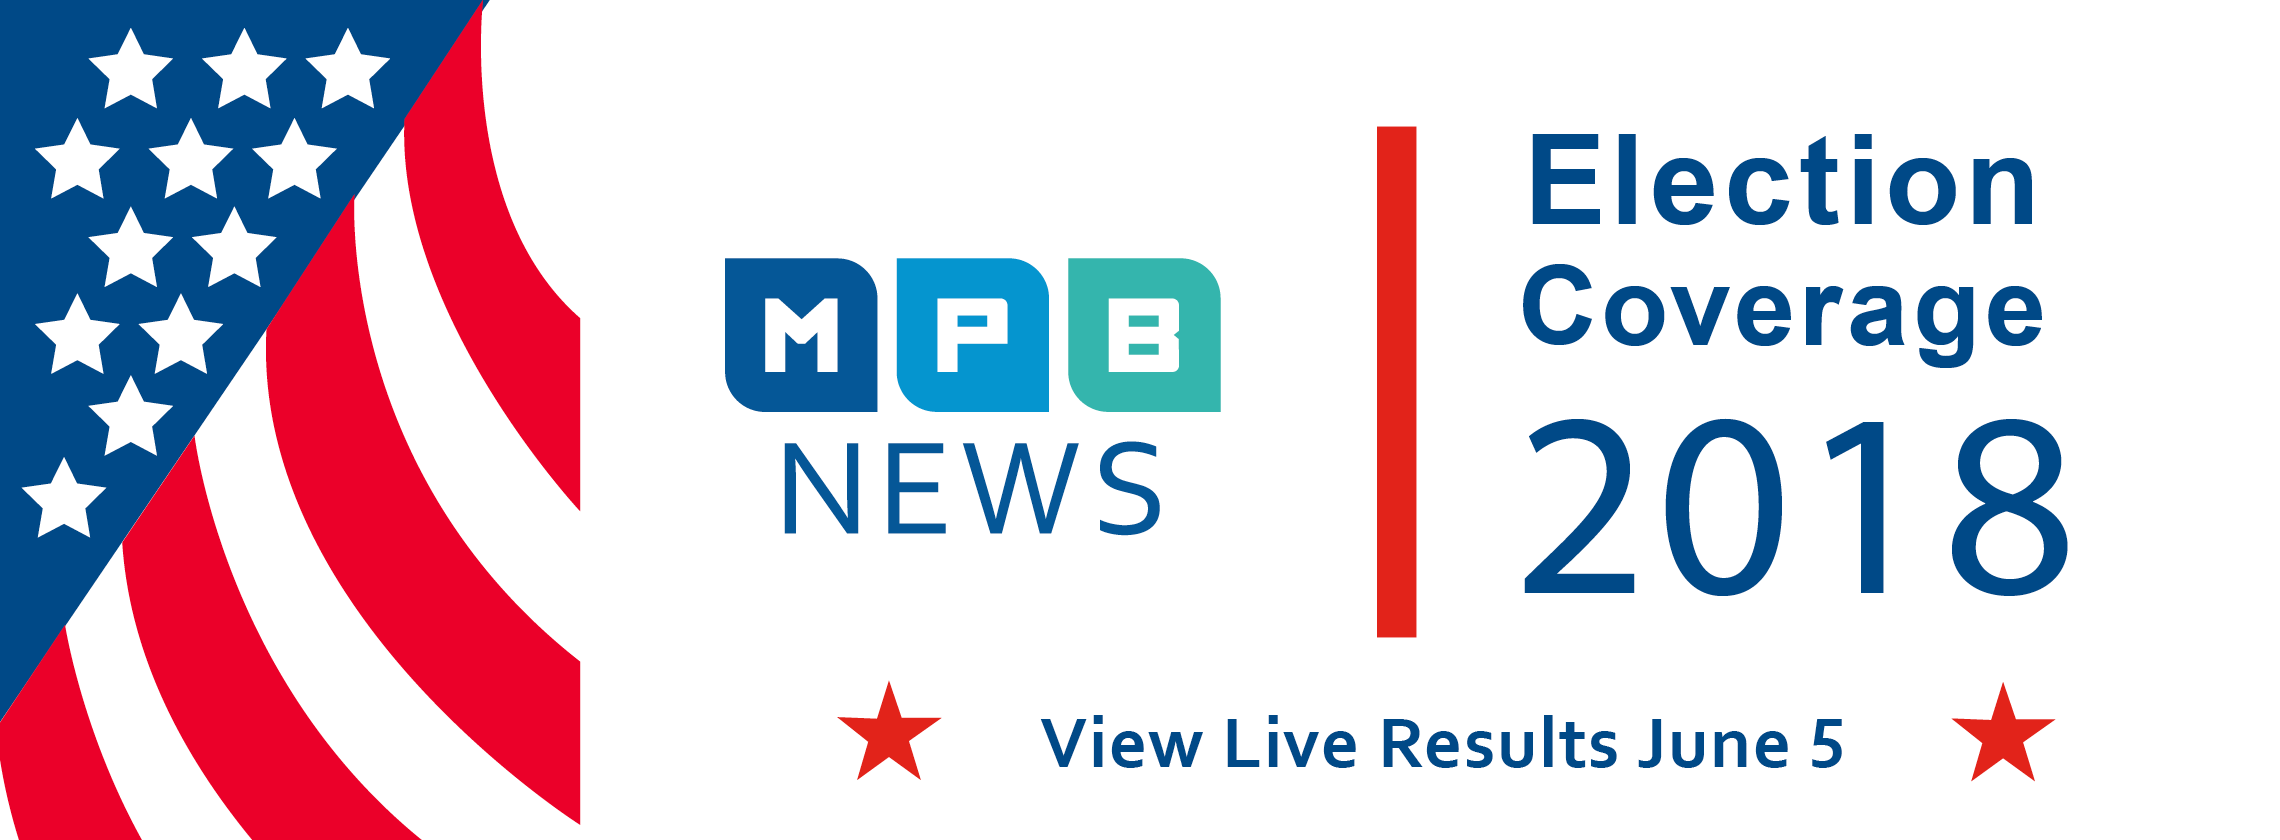 Election 2018 Primary Coverage. View Results June 5.